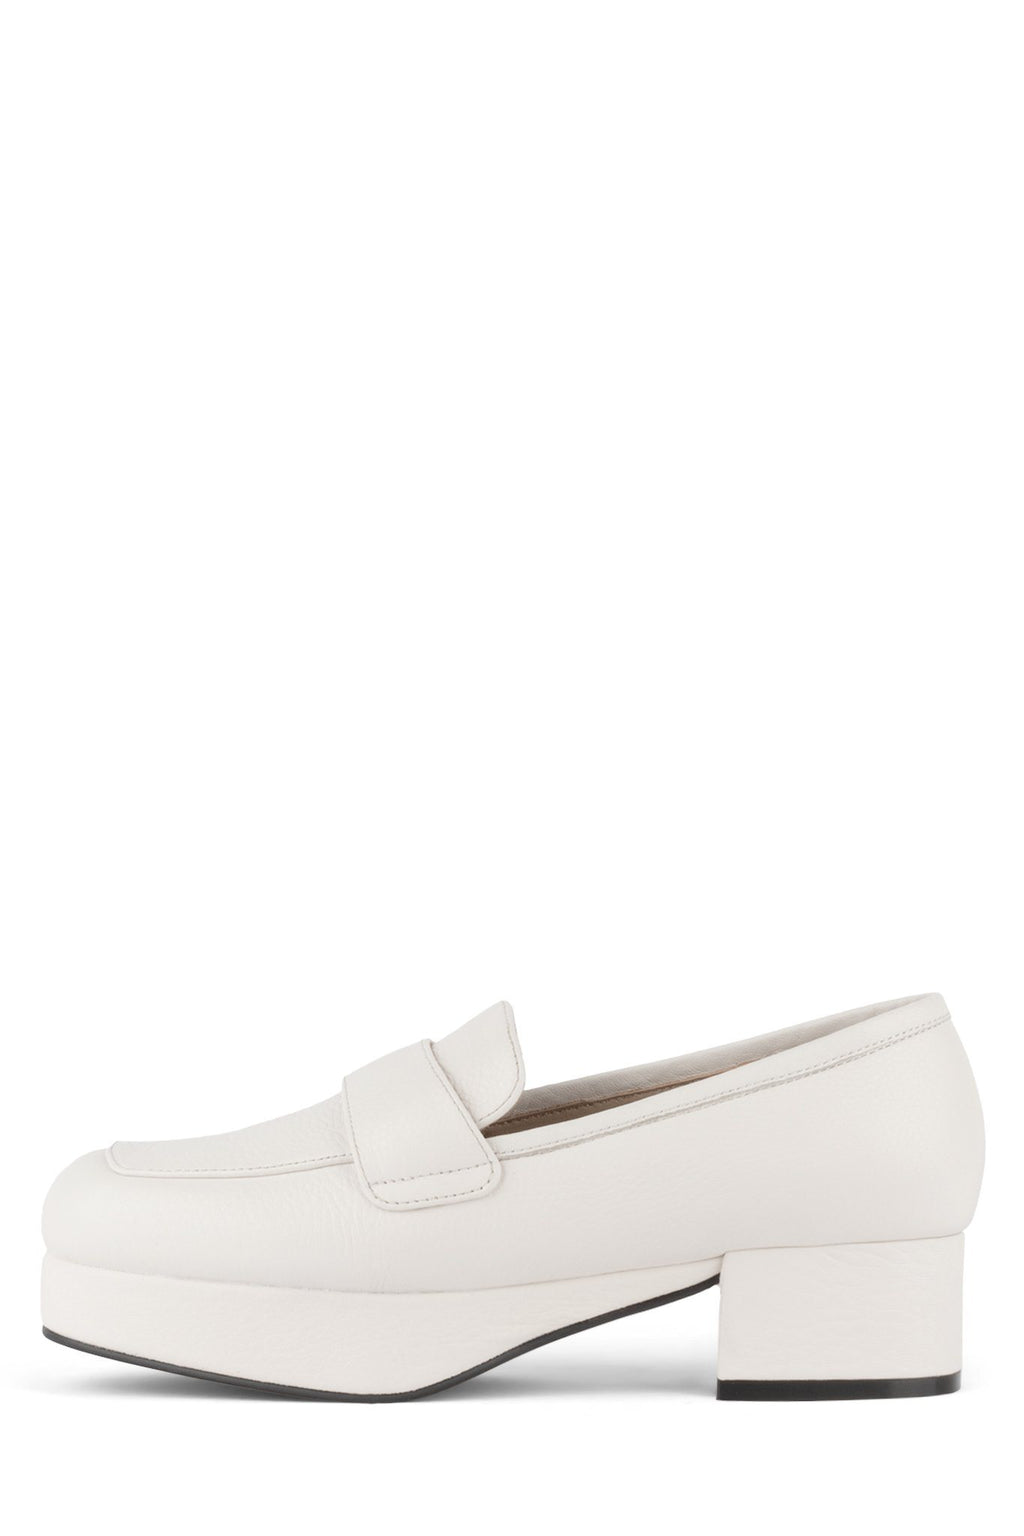 STUDENT Loafer Jeffrey Campbell Ivory 6